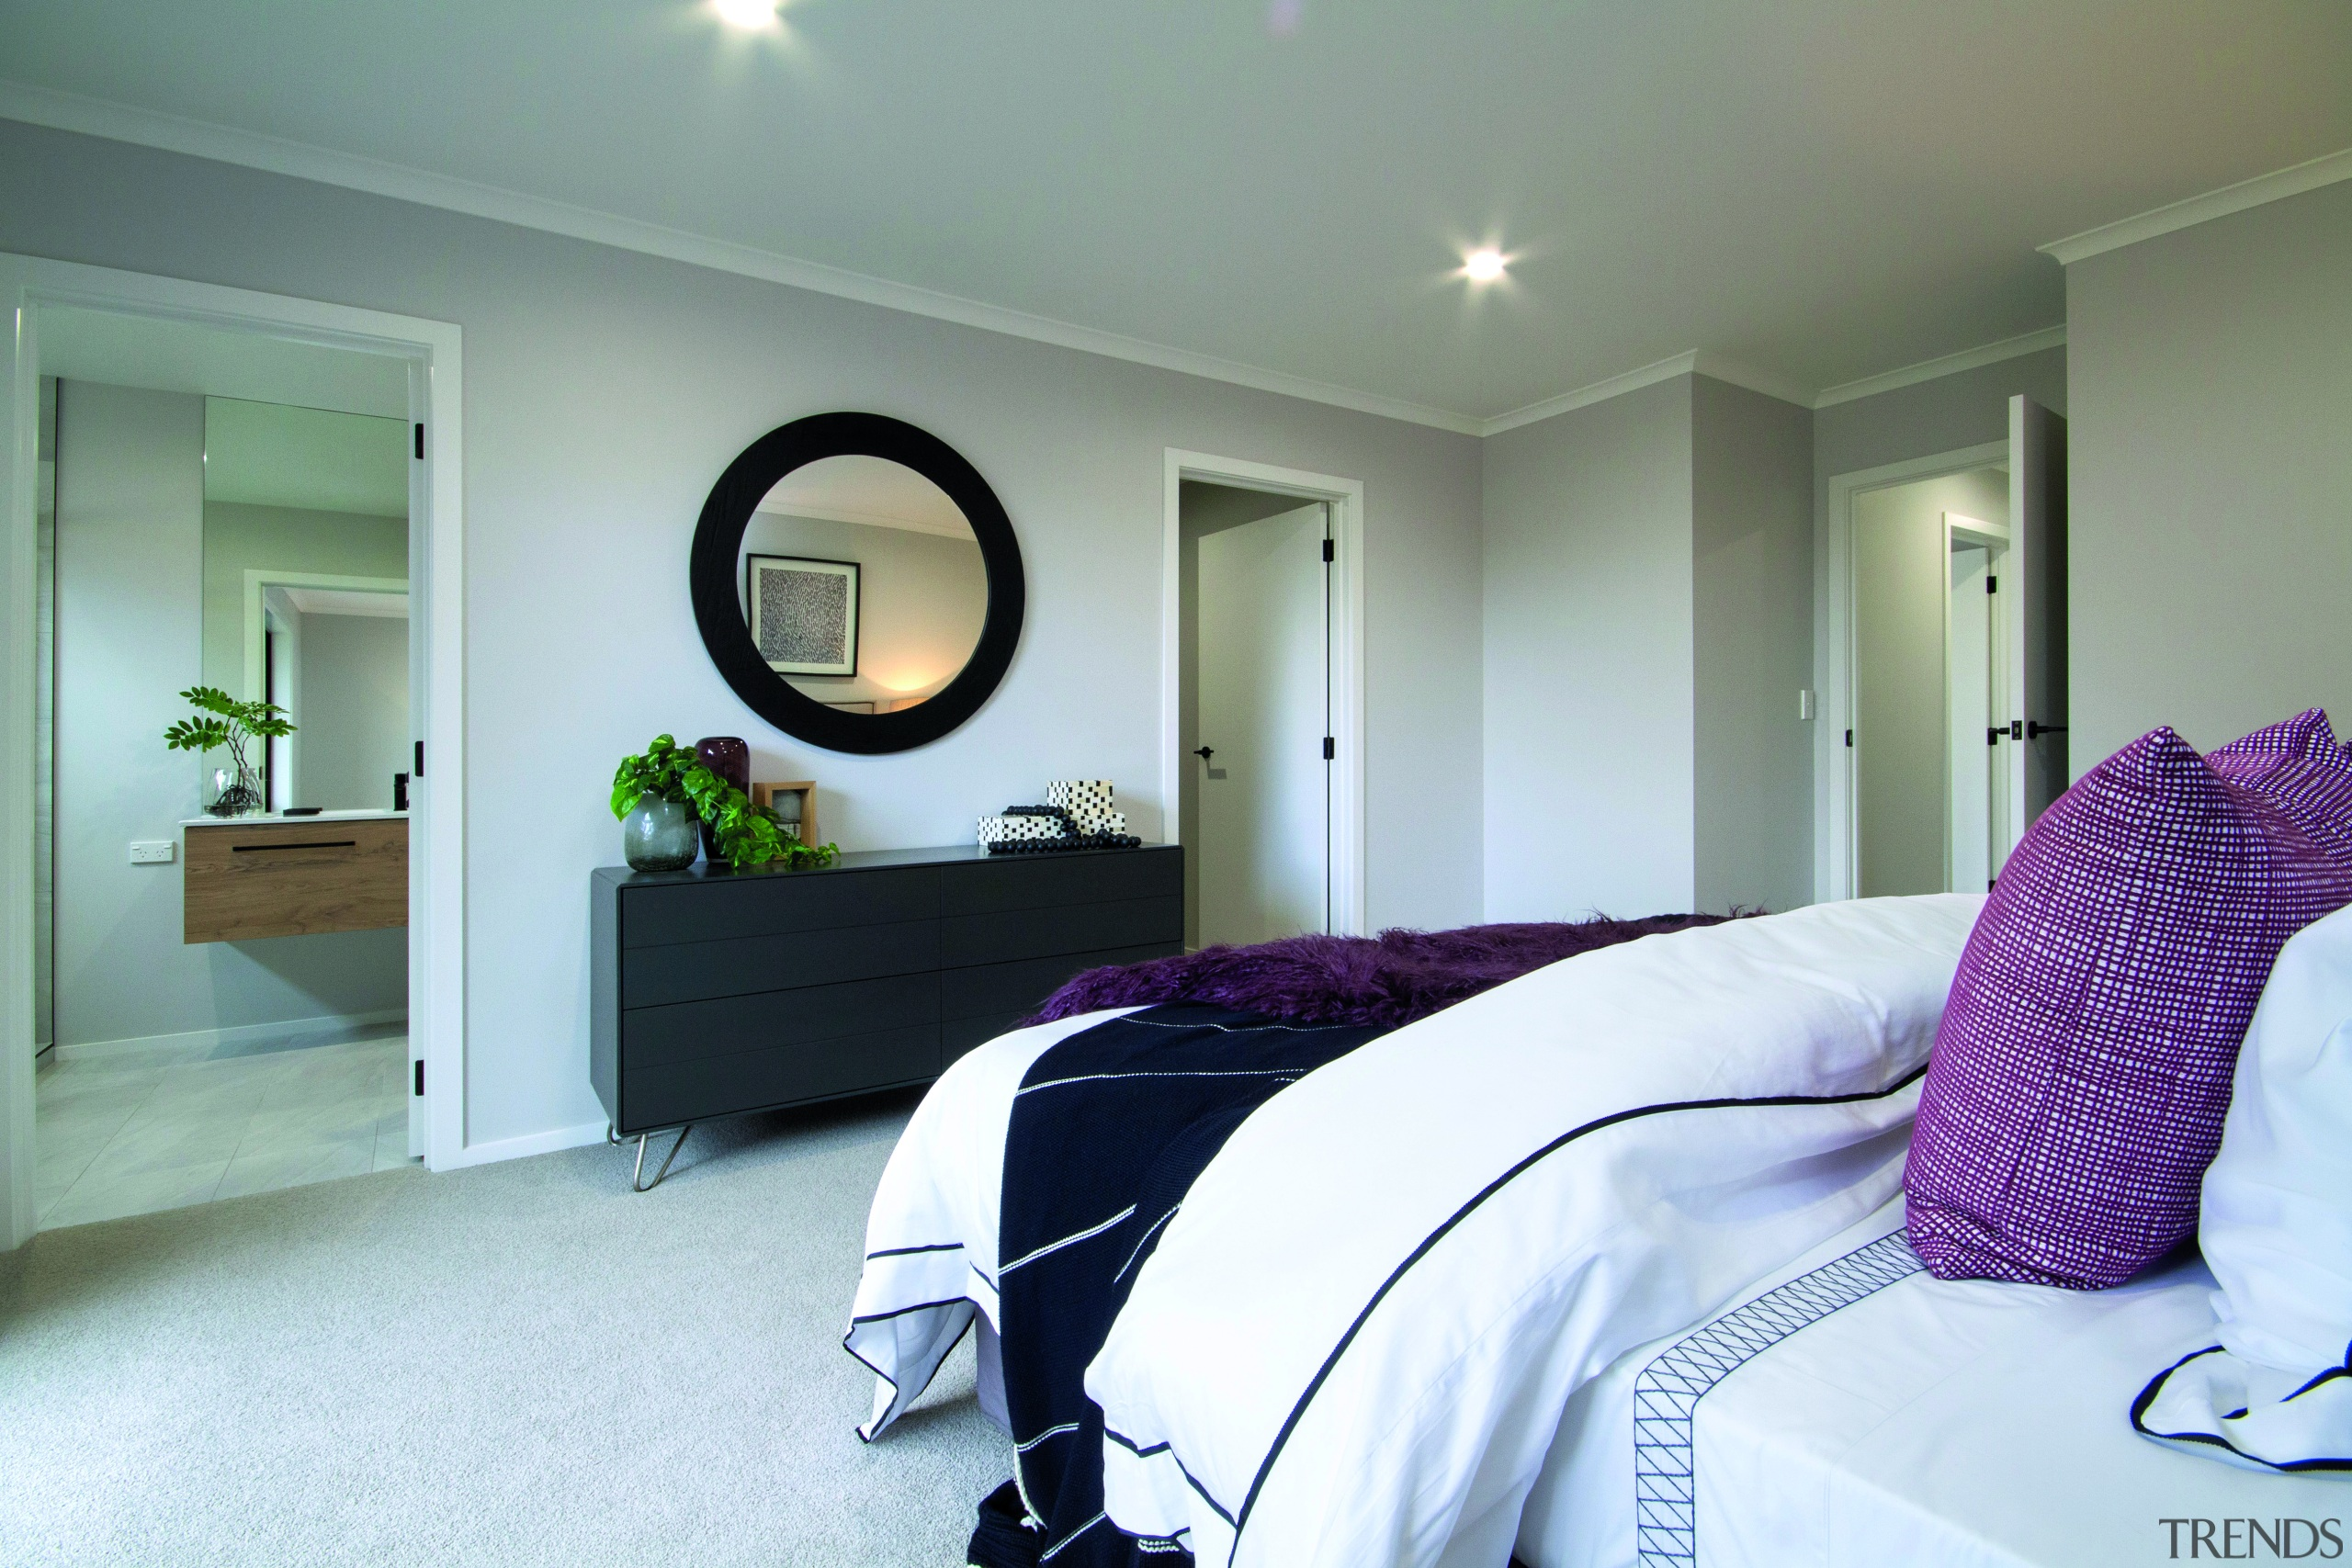 In this well laid out showhome by GJ bed, bedroom, furniture, home, house, interior design, GJ Gardner Homes, home builder